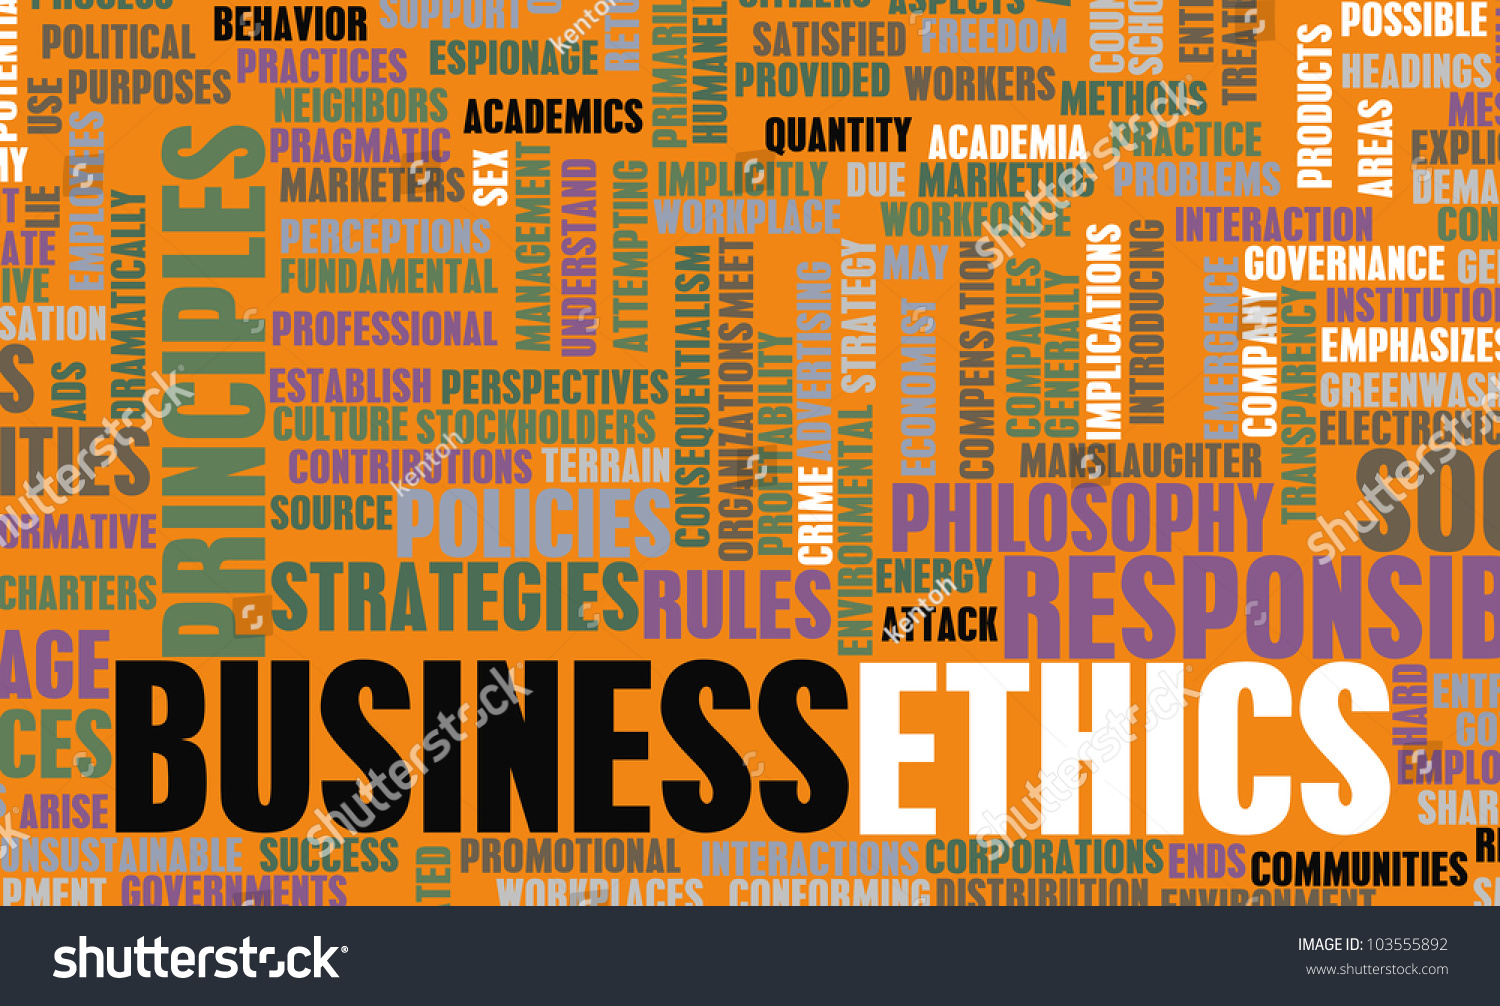 guideline for business ethic From running in-house initiatives to following global guidelines, we at mtg do business the right way and maintain an ethical business culture.